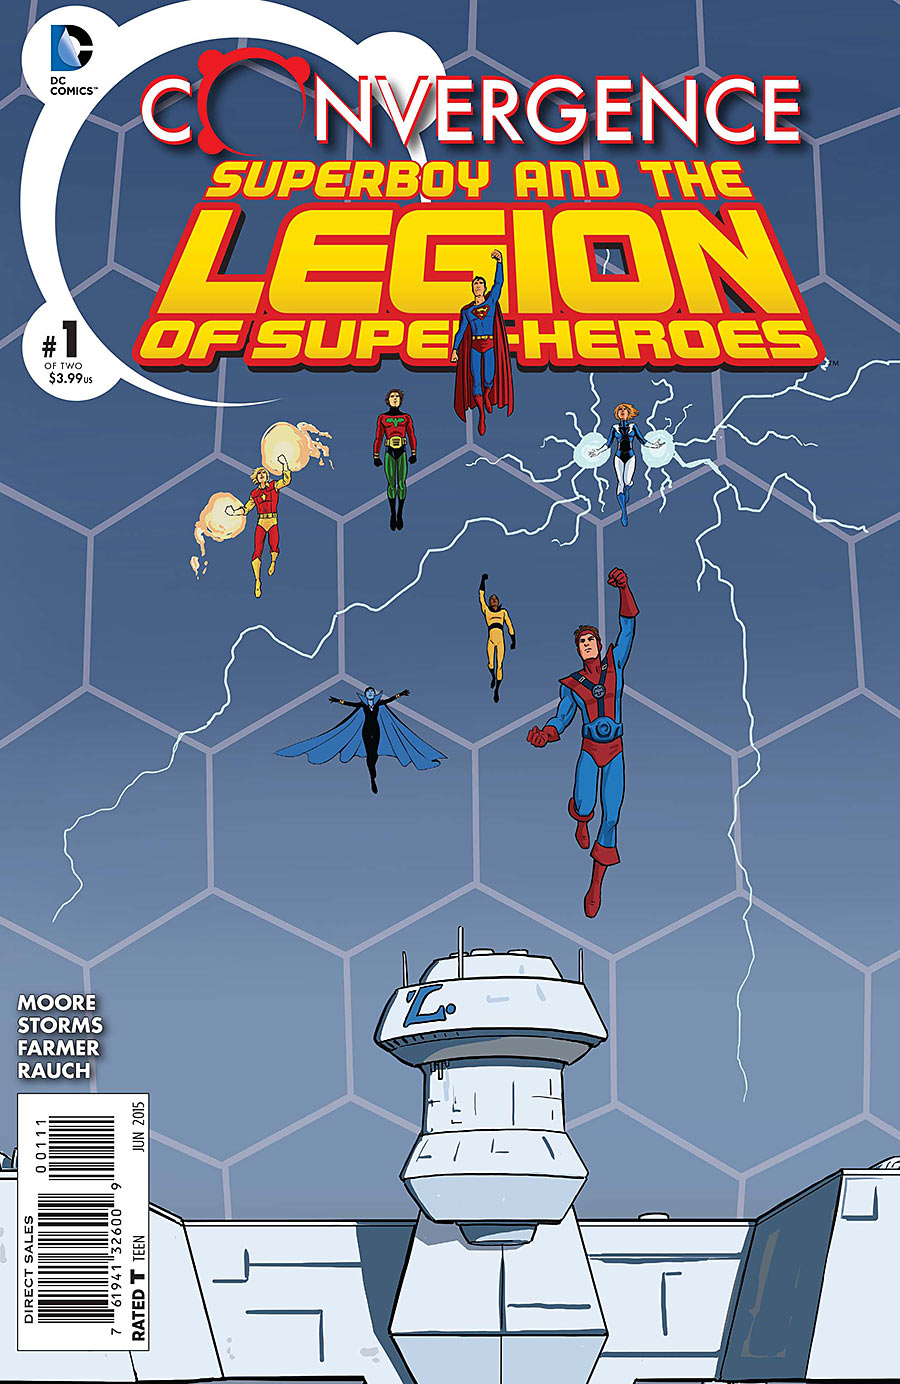 Superboy and the Legion of Superheroes #1